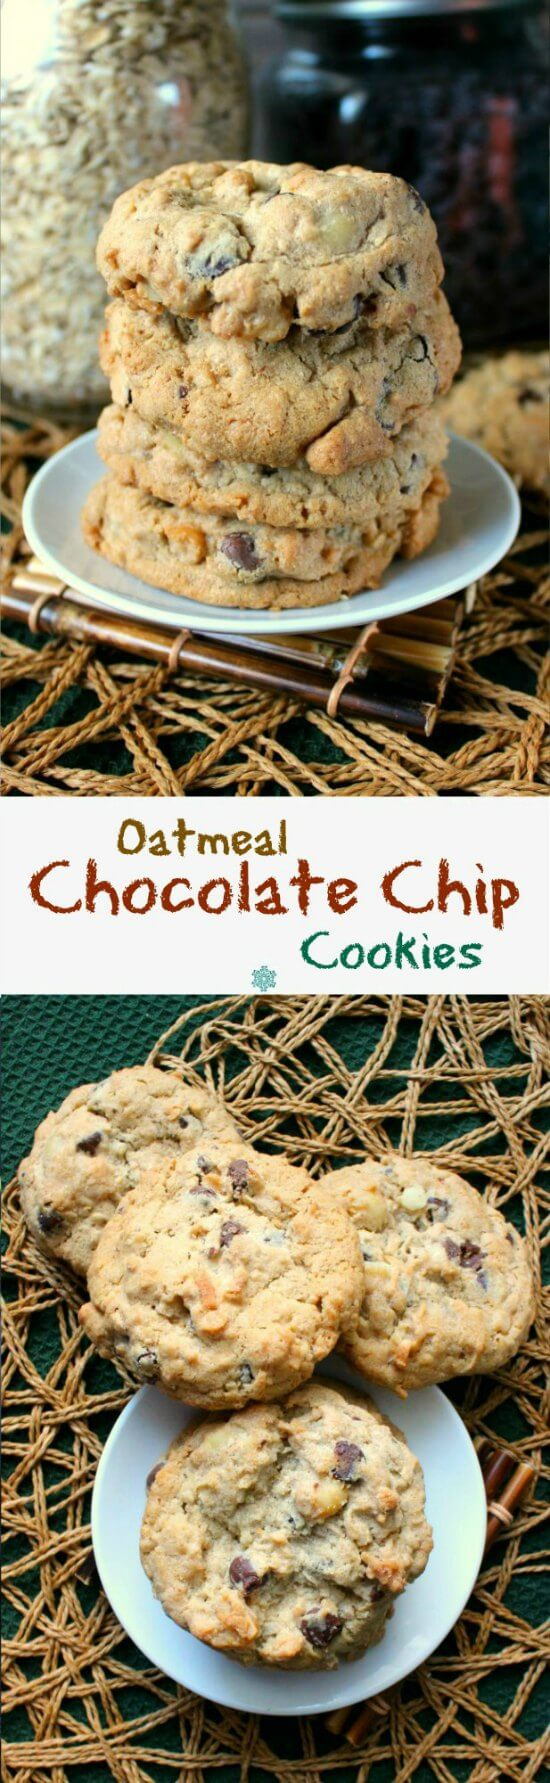 Nut Free Oatmeal Chocolate Chip Cookies are easy and tasty. Fill up your cookie jar with a classic drop cookie.